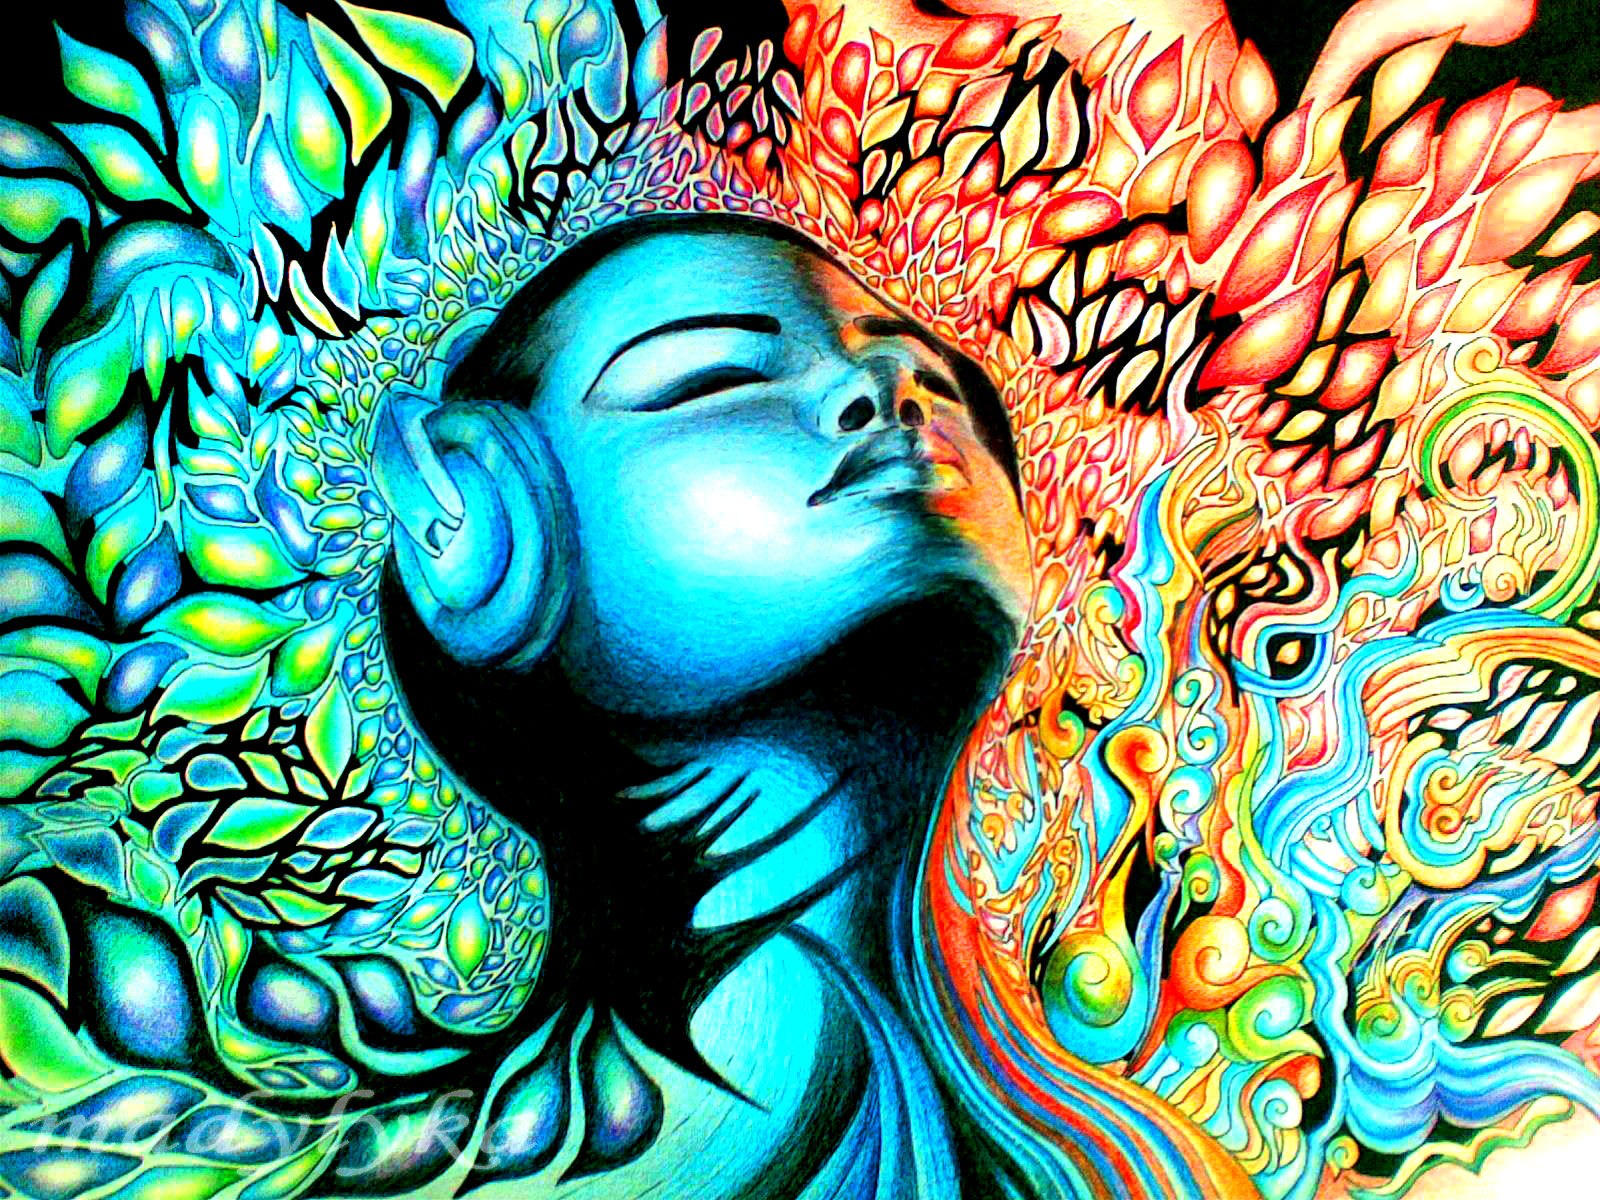 Psychedelic Wallpaper Hd Wallpapers Download 1600x1200